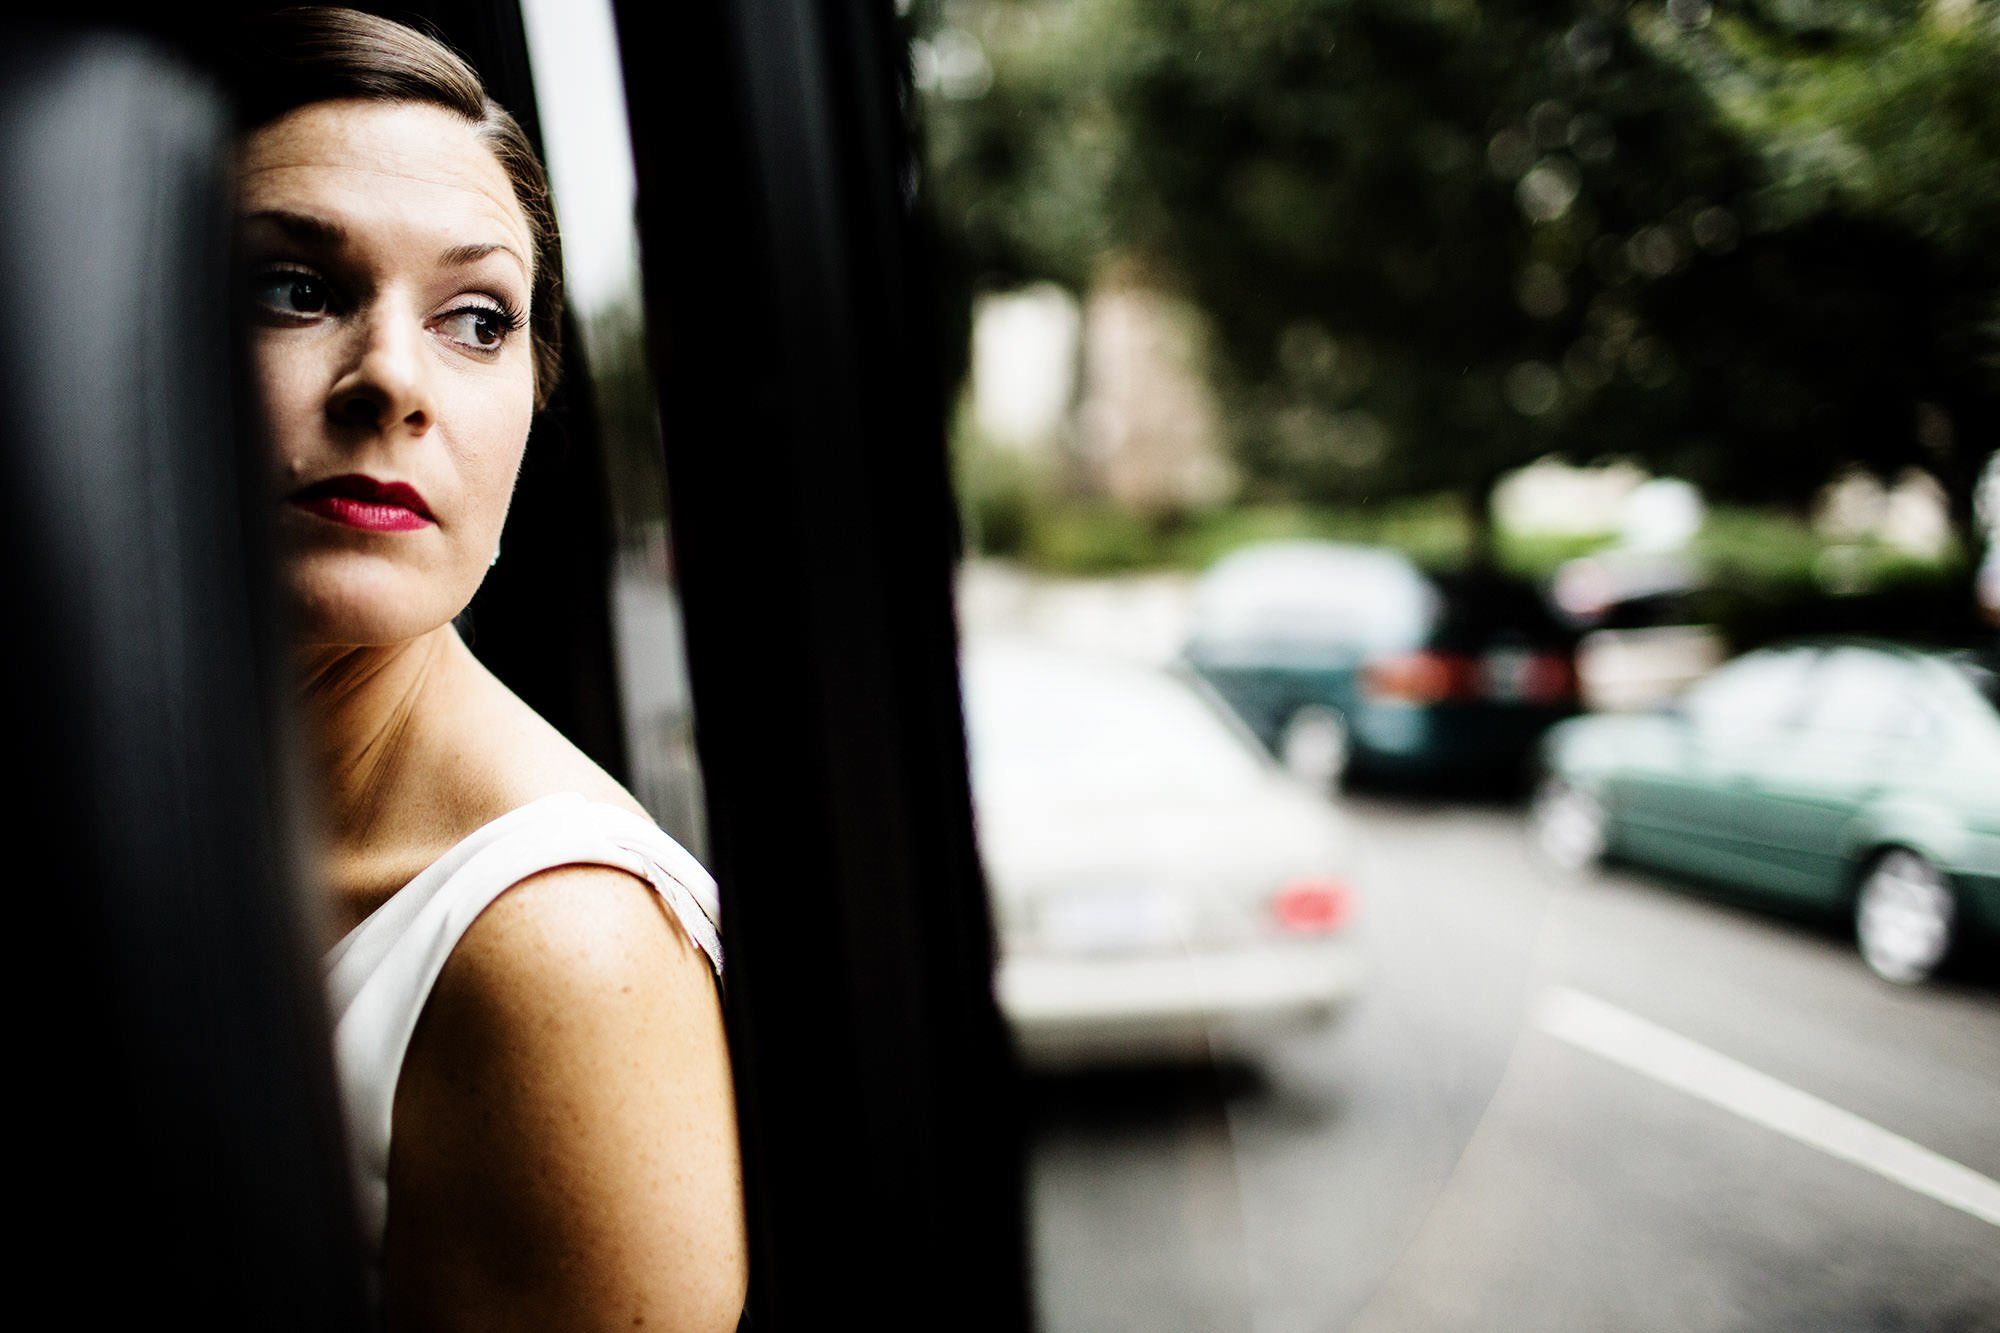 The Bride takes a Shuttle to her wedding ceremony.